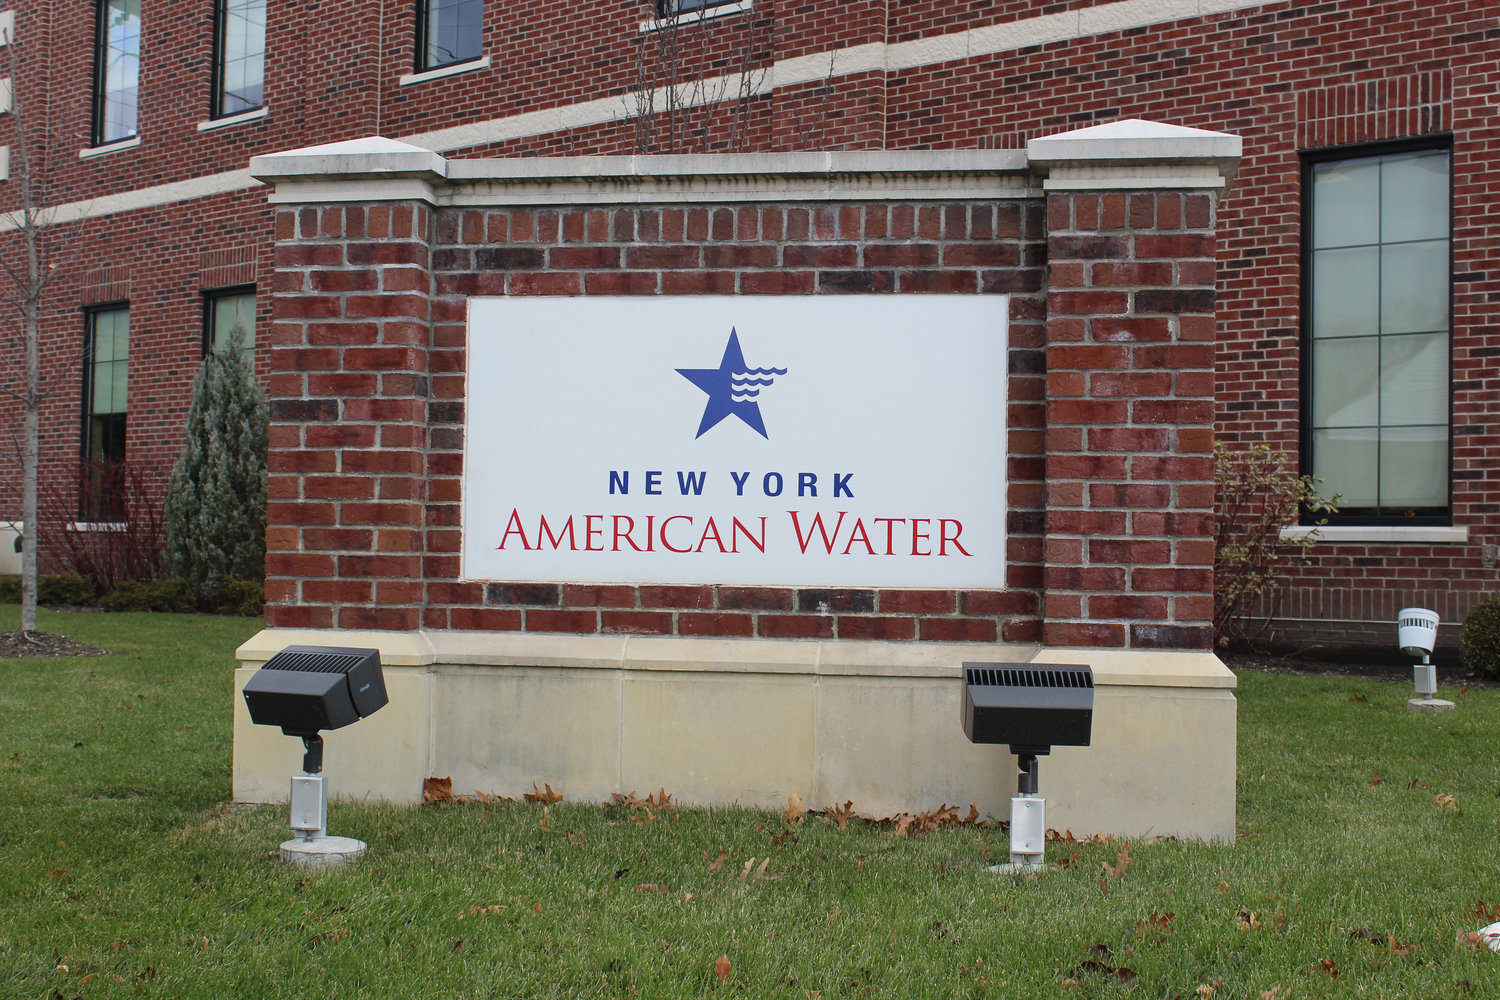 New York American Water is in the process of replacing an aging water main along Bennett Street, Lindbergh Avenue and Byrd Street in Oceanside.